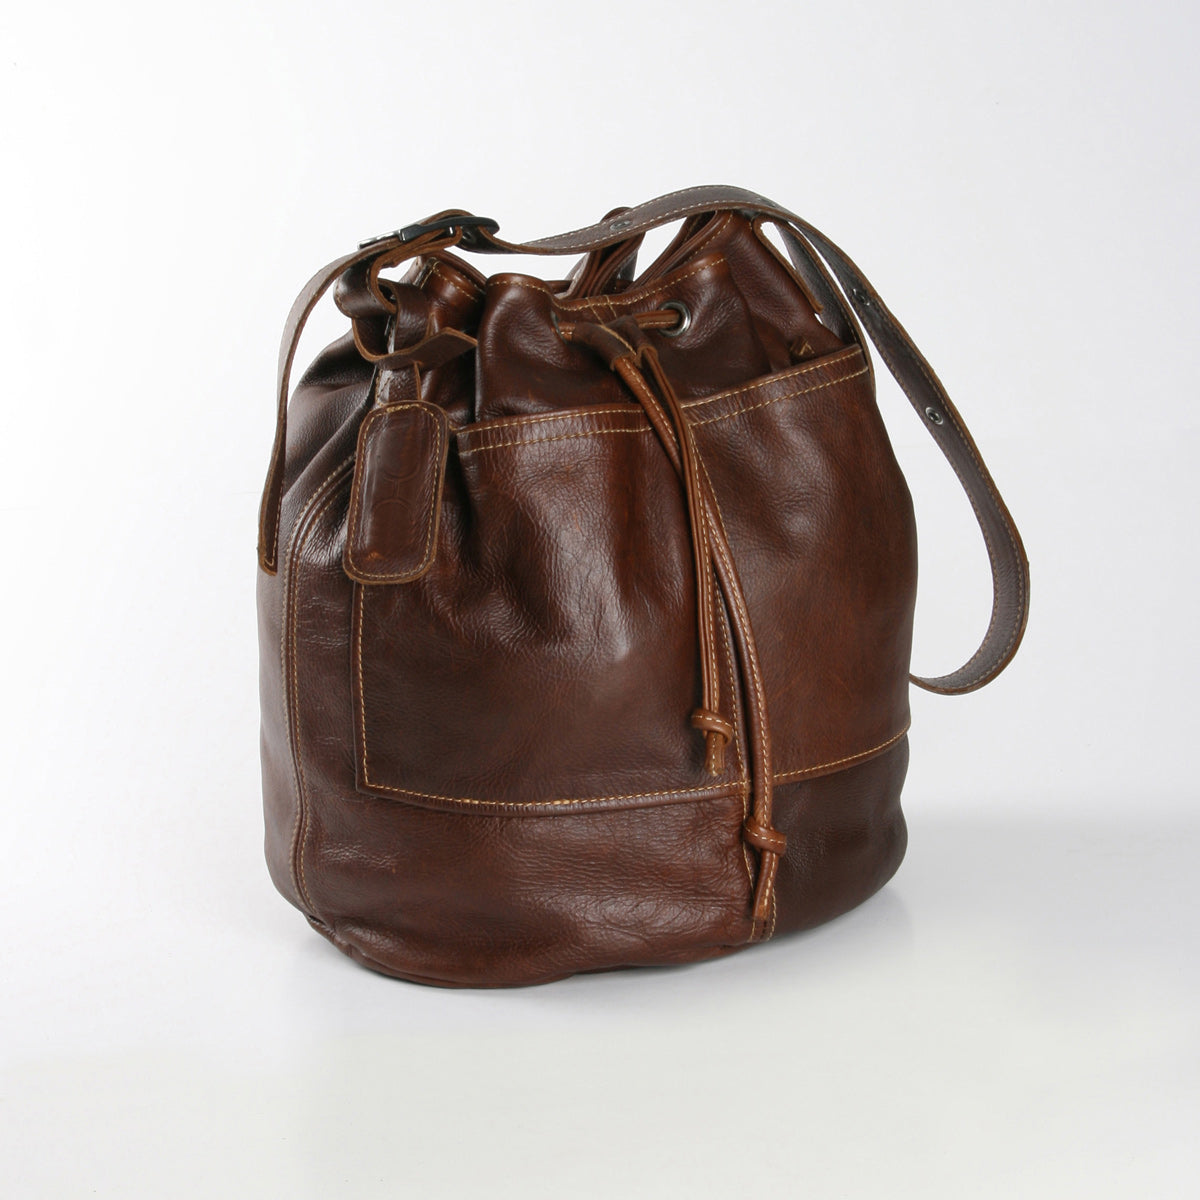 Thandana Bucket Sling Bag - Brown - Zufrique Boutique